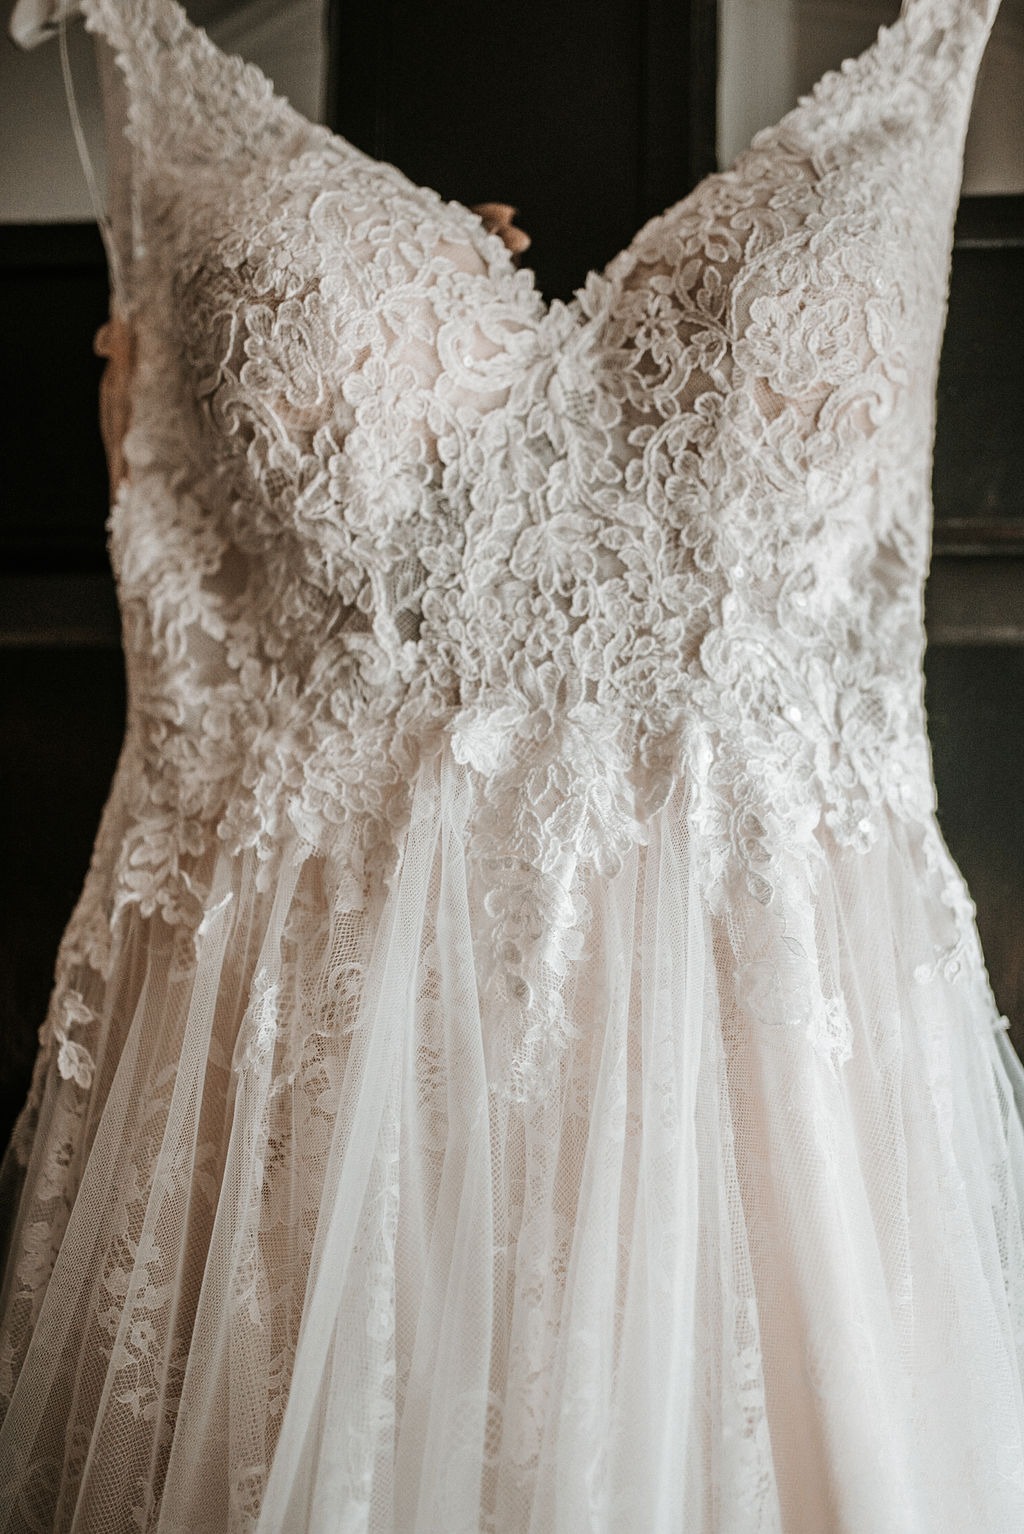 Wedding Dress Detail Shot at The Woodlands at Algonkian